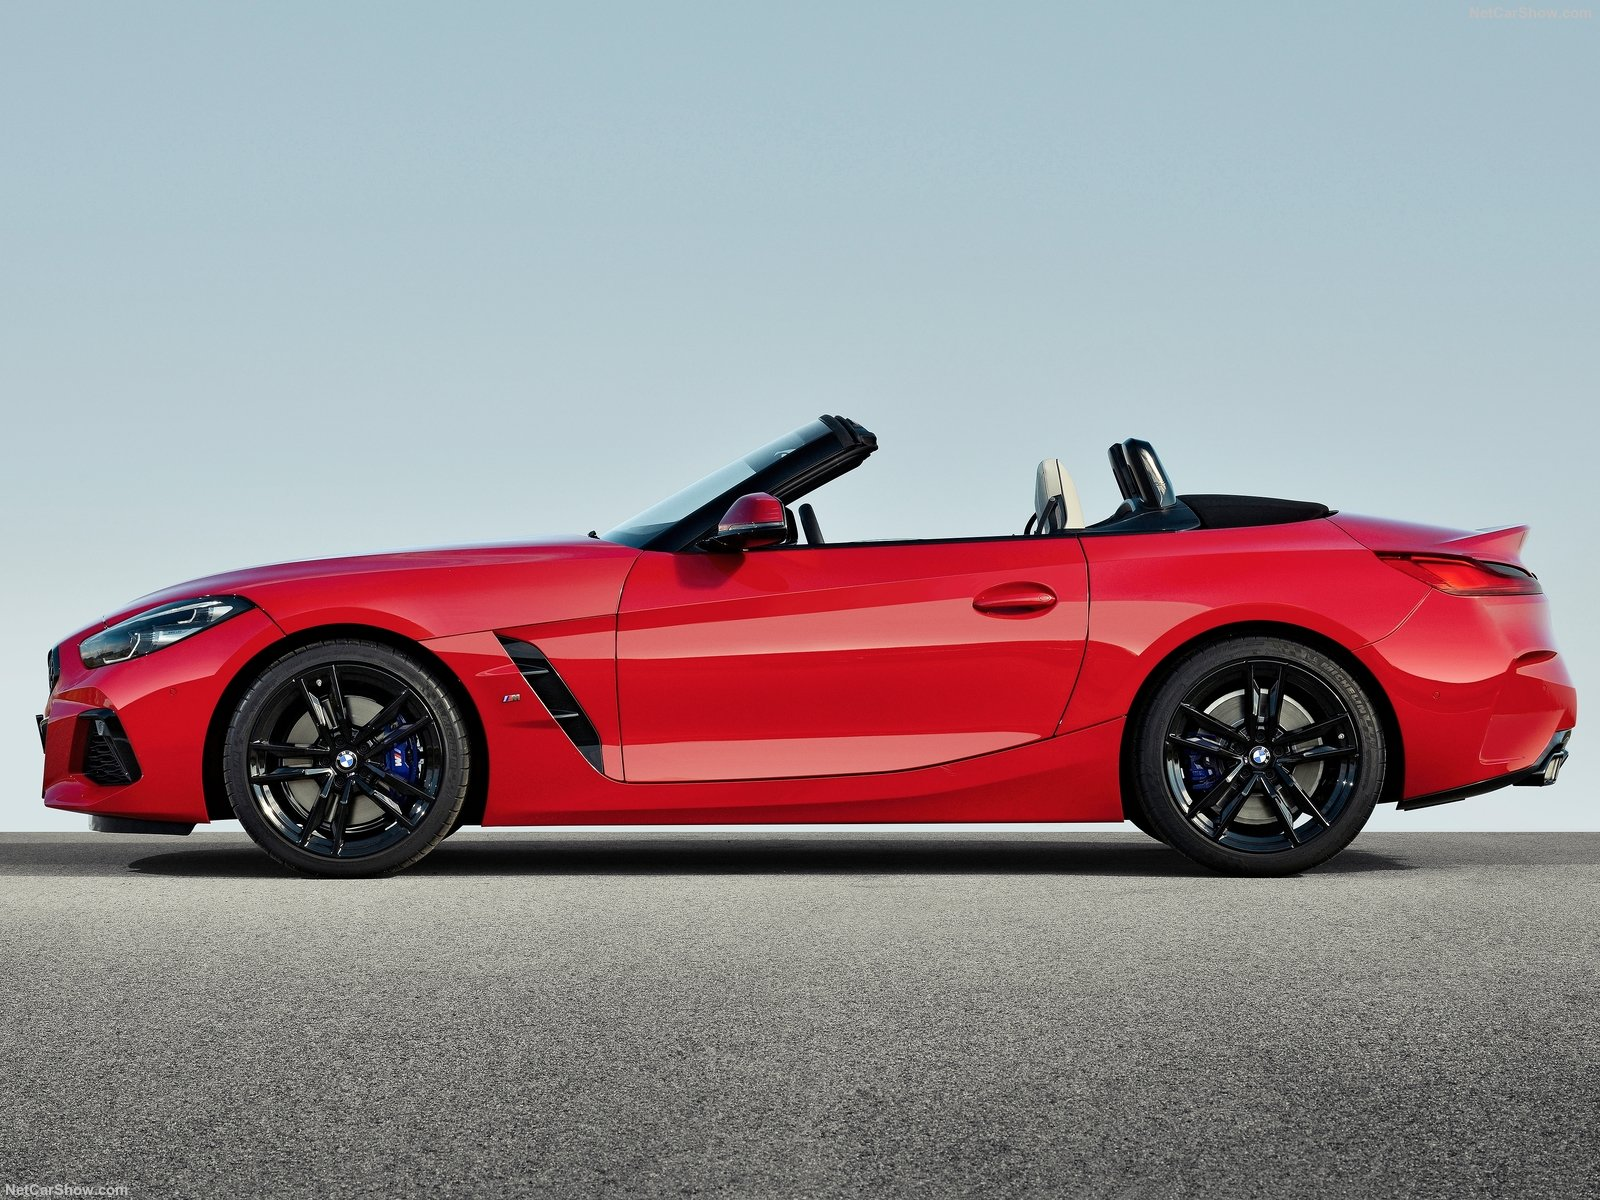 BMW-Z4_M40i_First_Edition-2019-1600-05